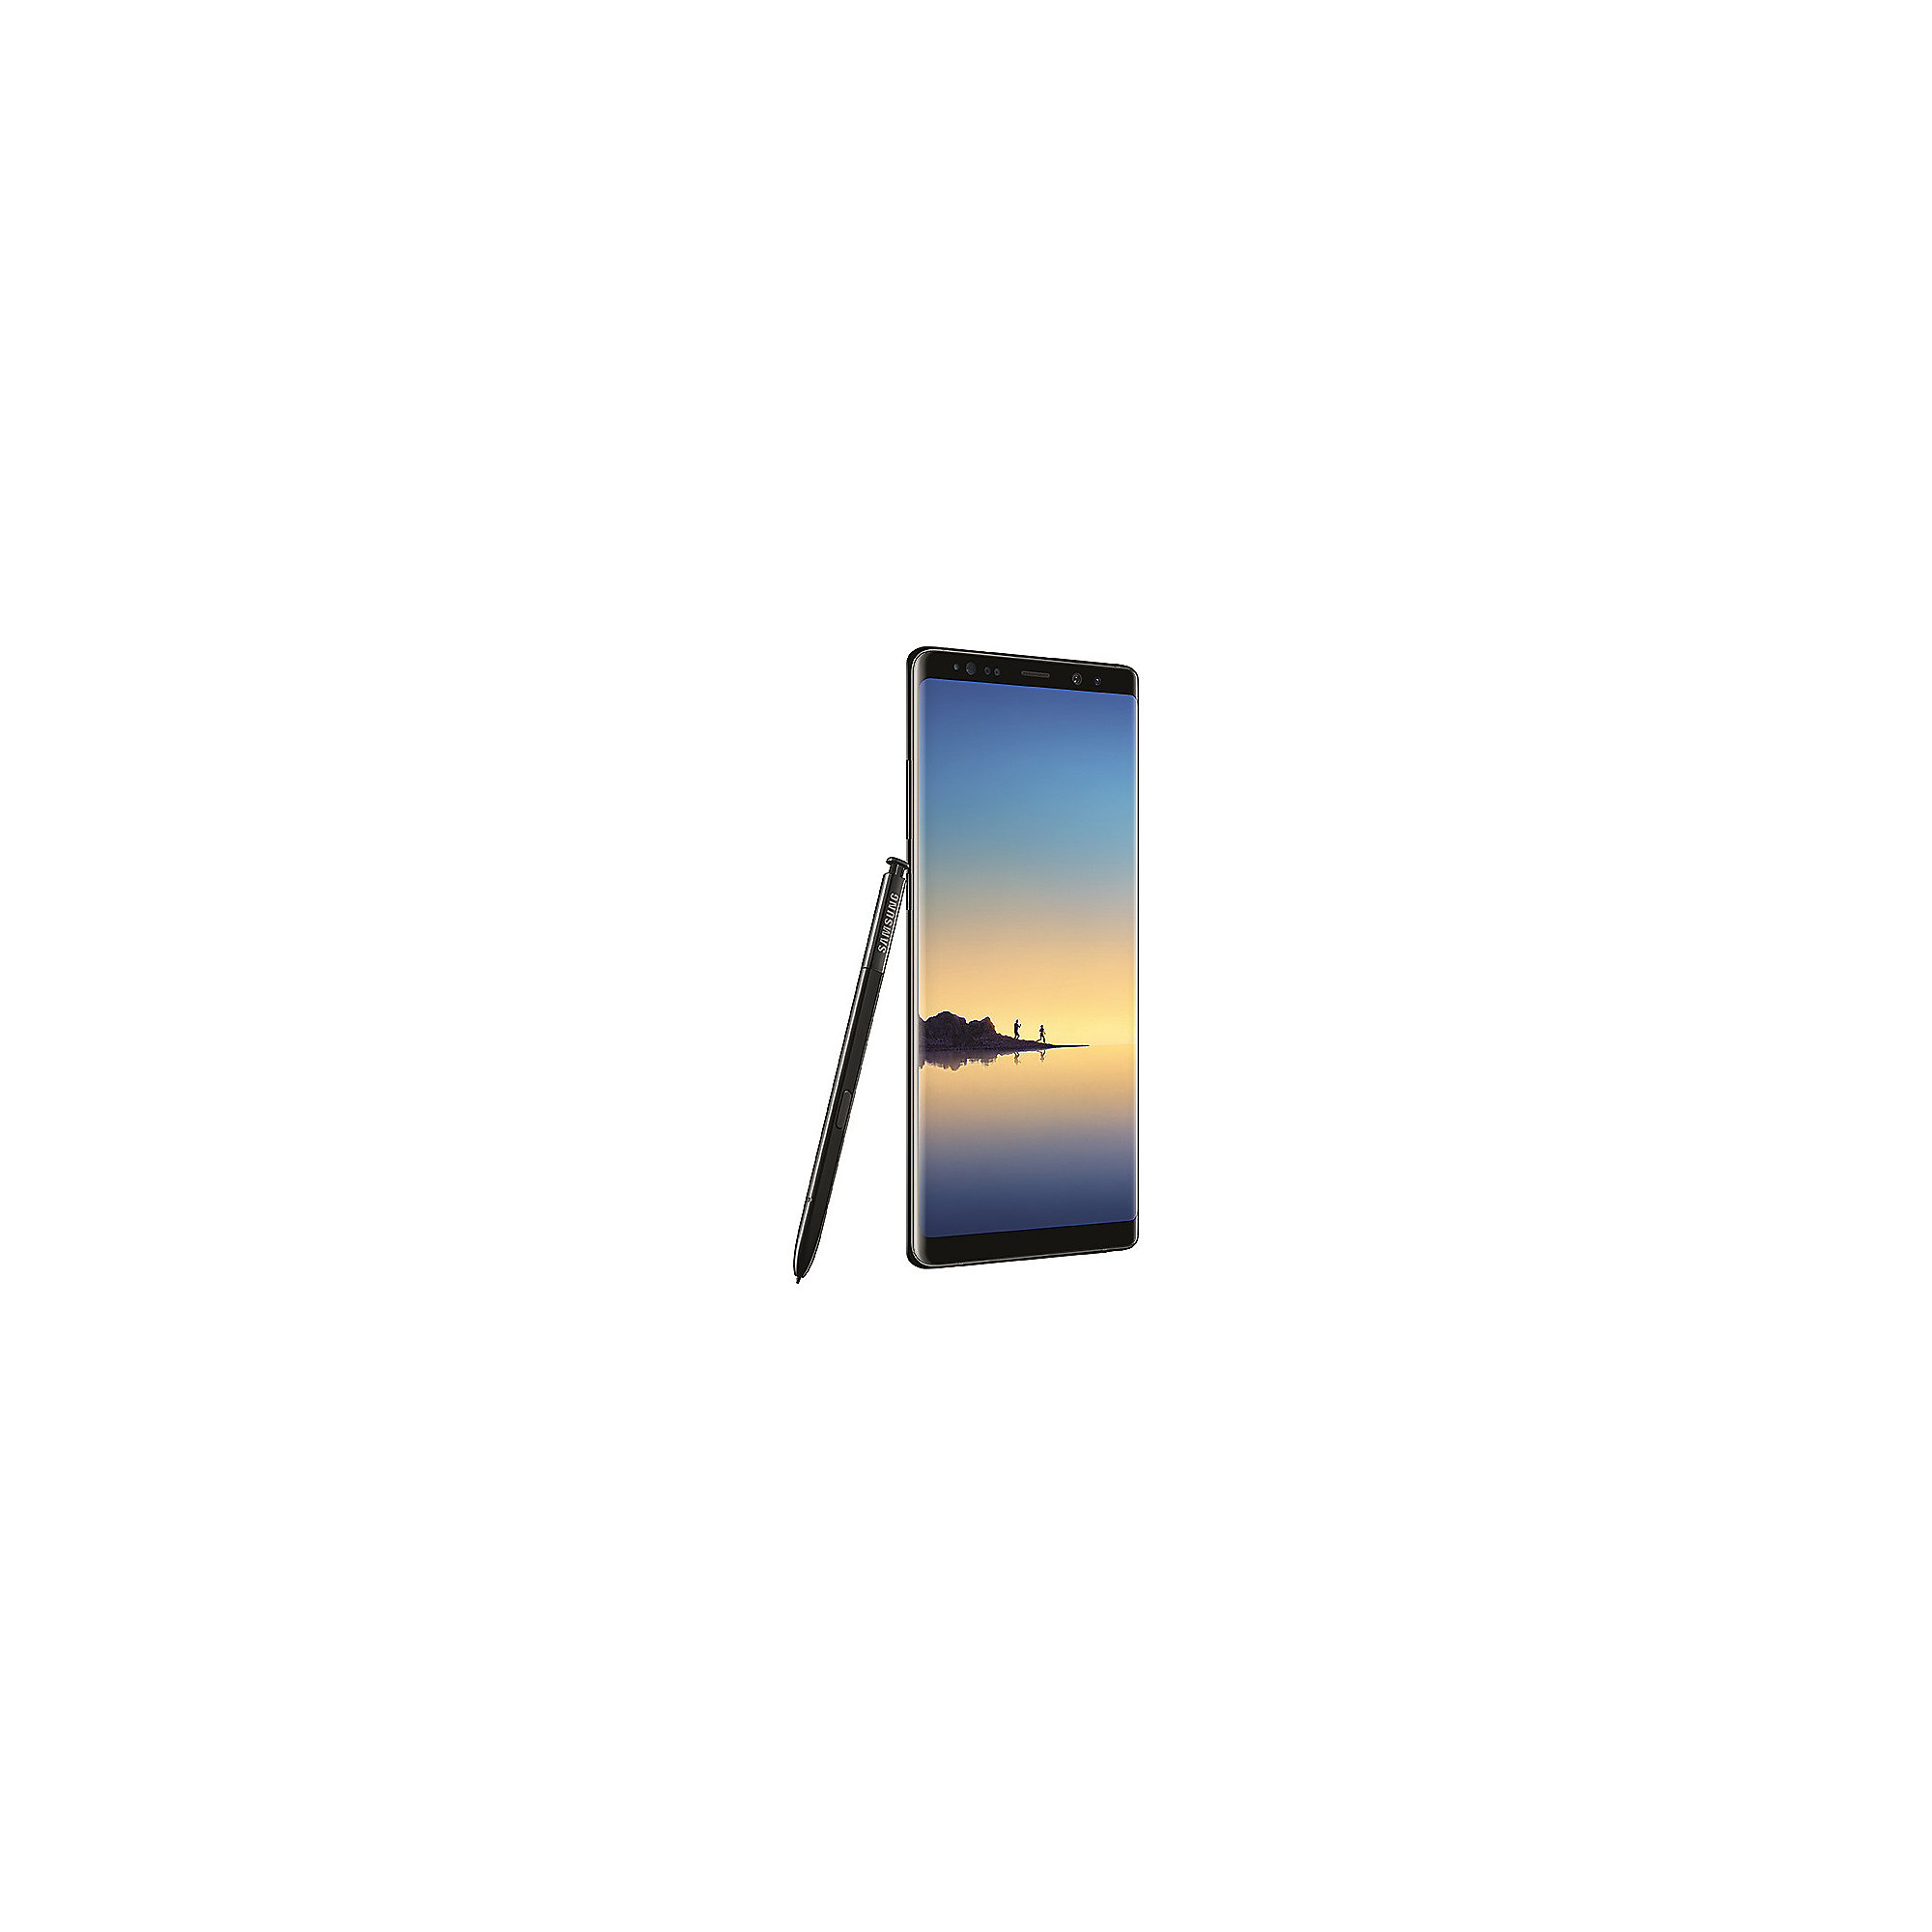 Samsung GALAXY Note 8 midnight black N950F 64 GB Android Smartphone